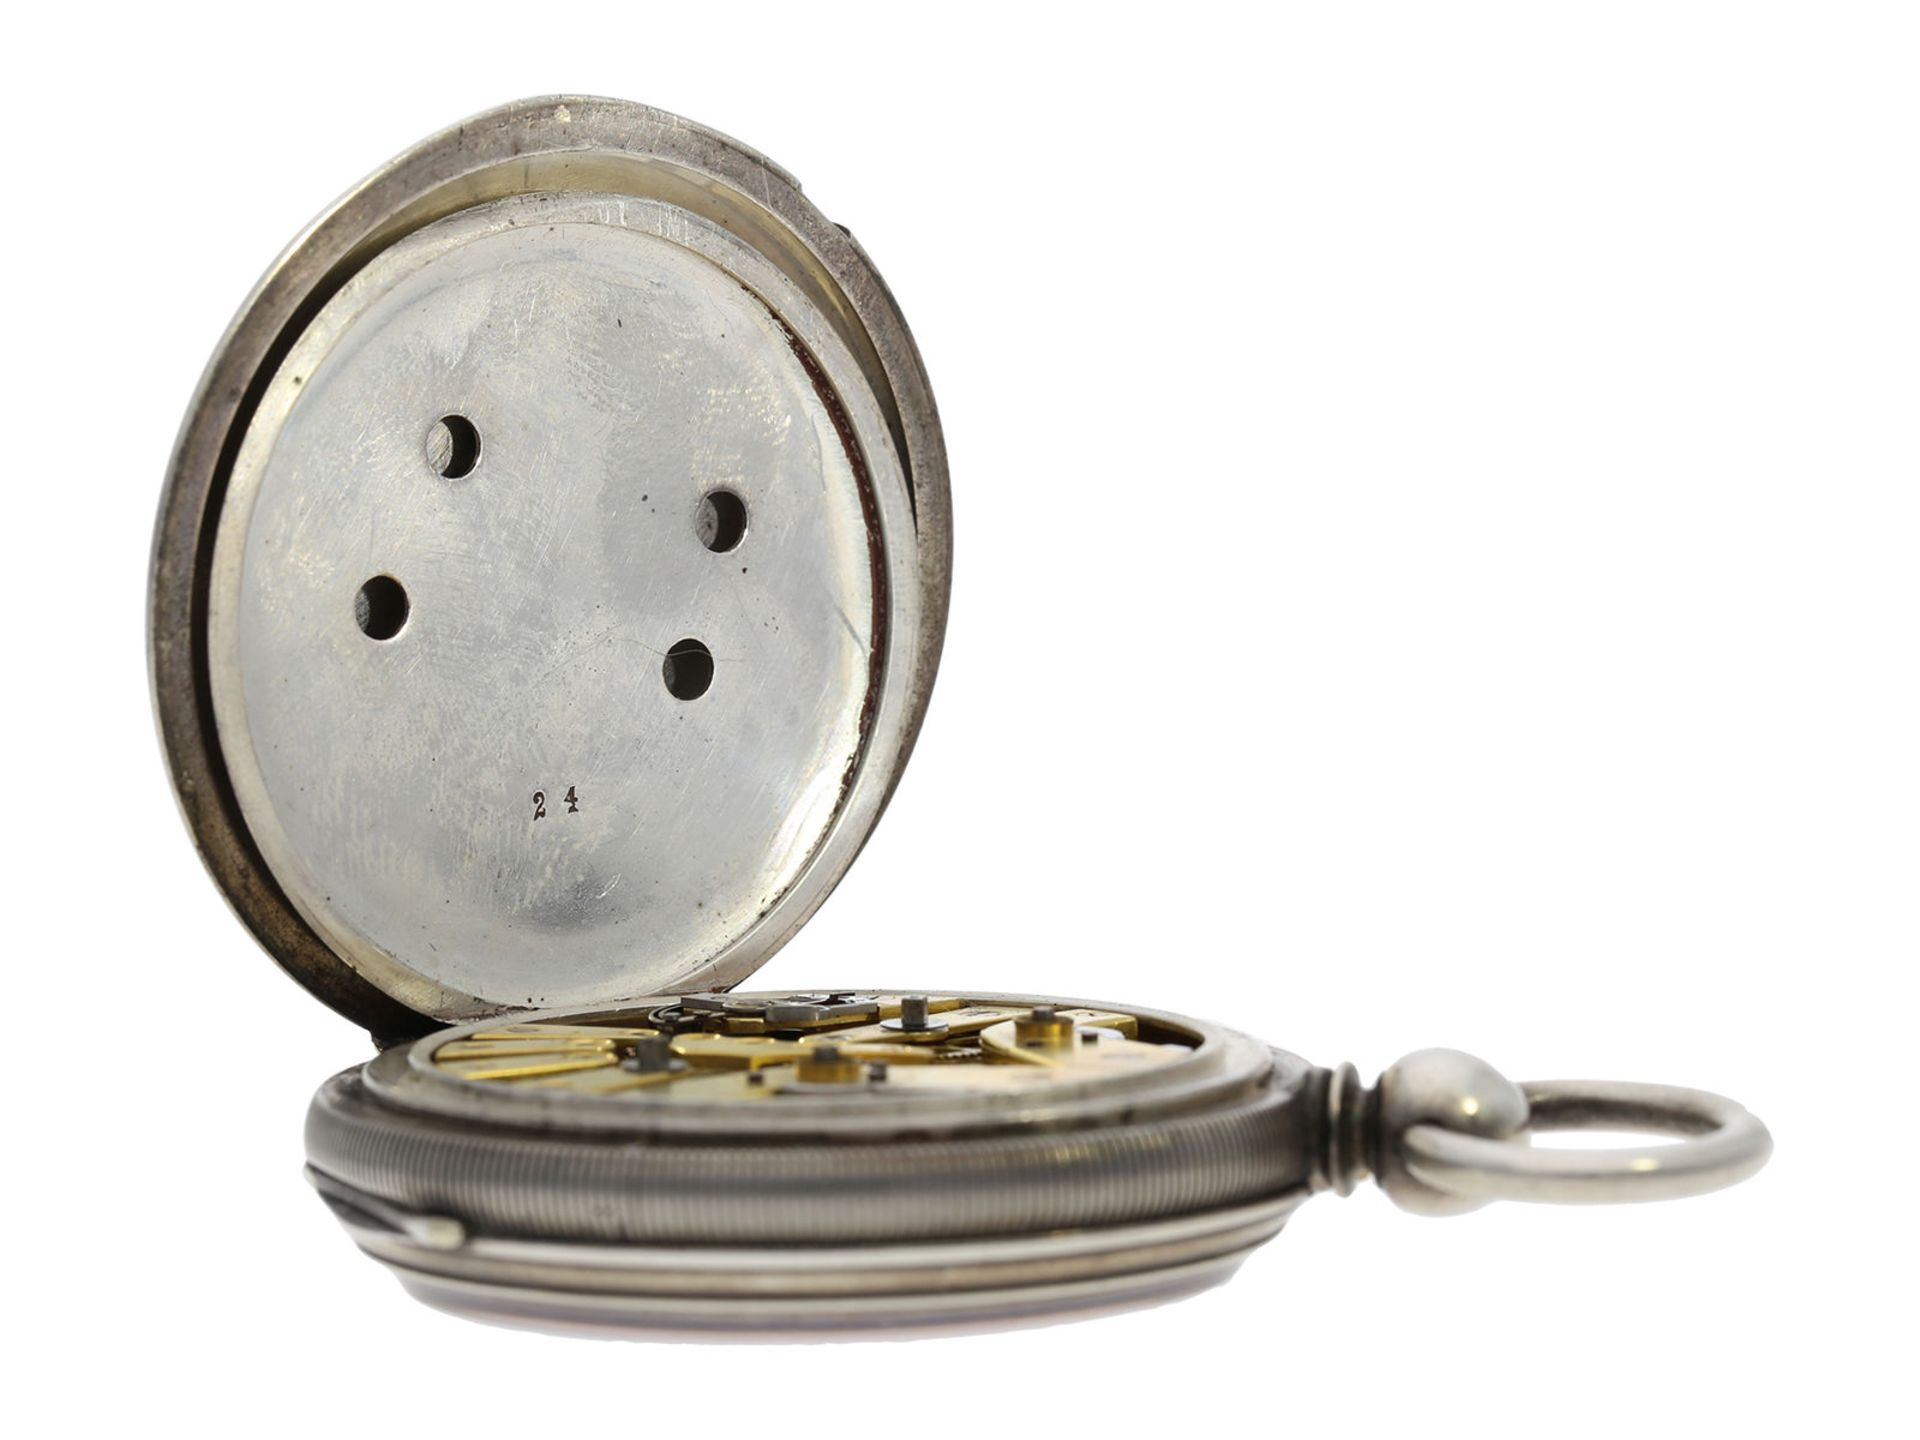 Pocket watch: early deck watch with 2 time zones and independent, stoppable centre seconds, signed - Bild 3 aus 5